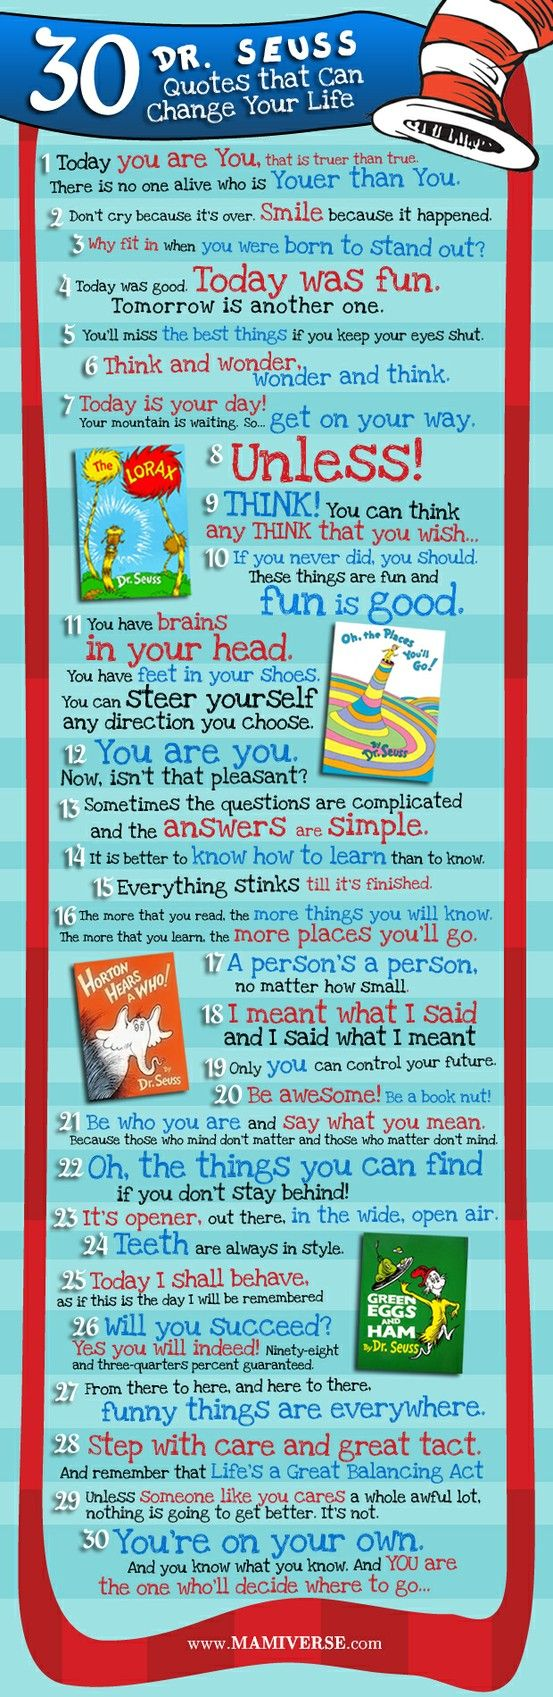 Dr. Suess Quotes